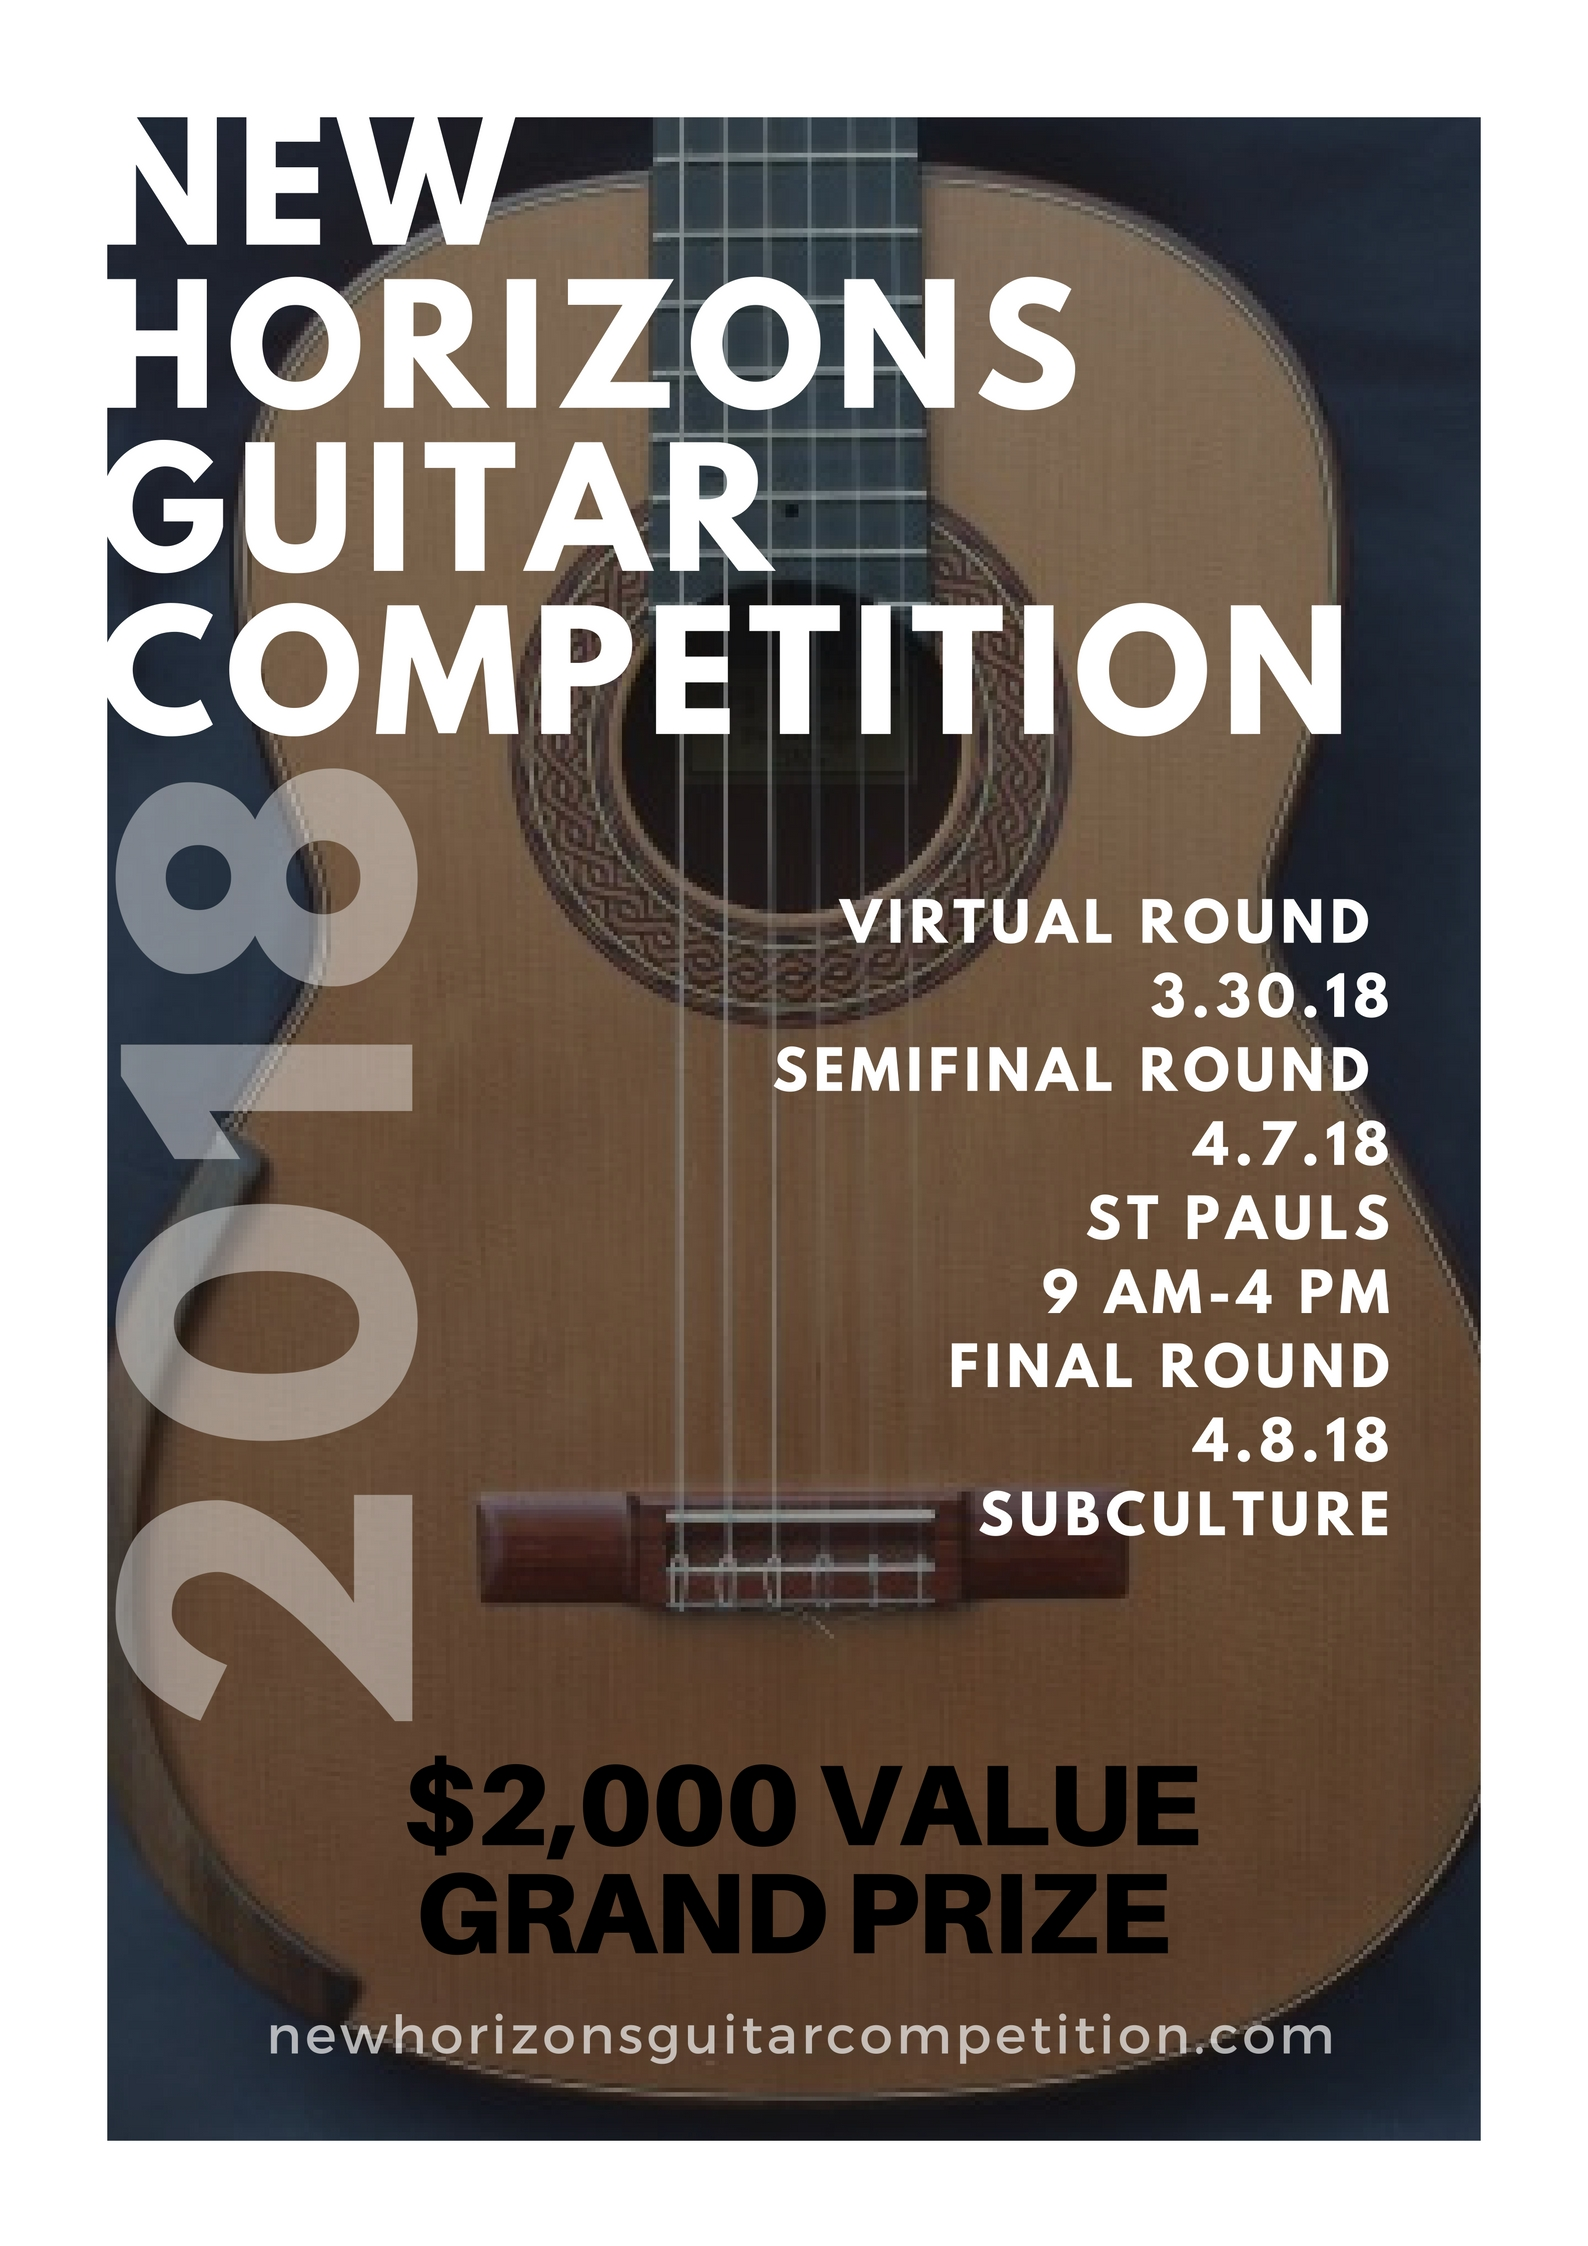 New horizons guitar competition.jpg